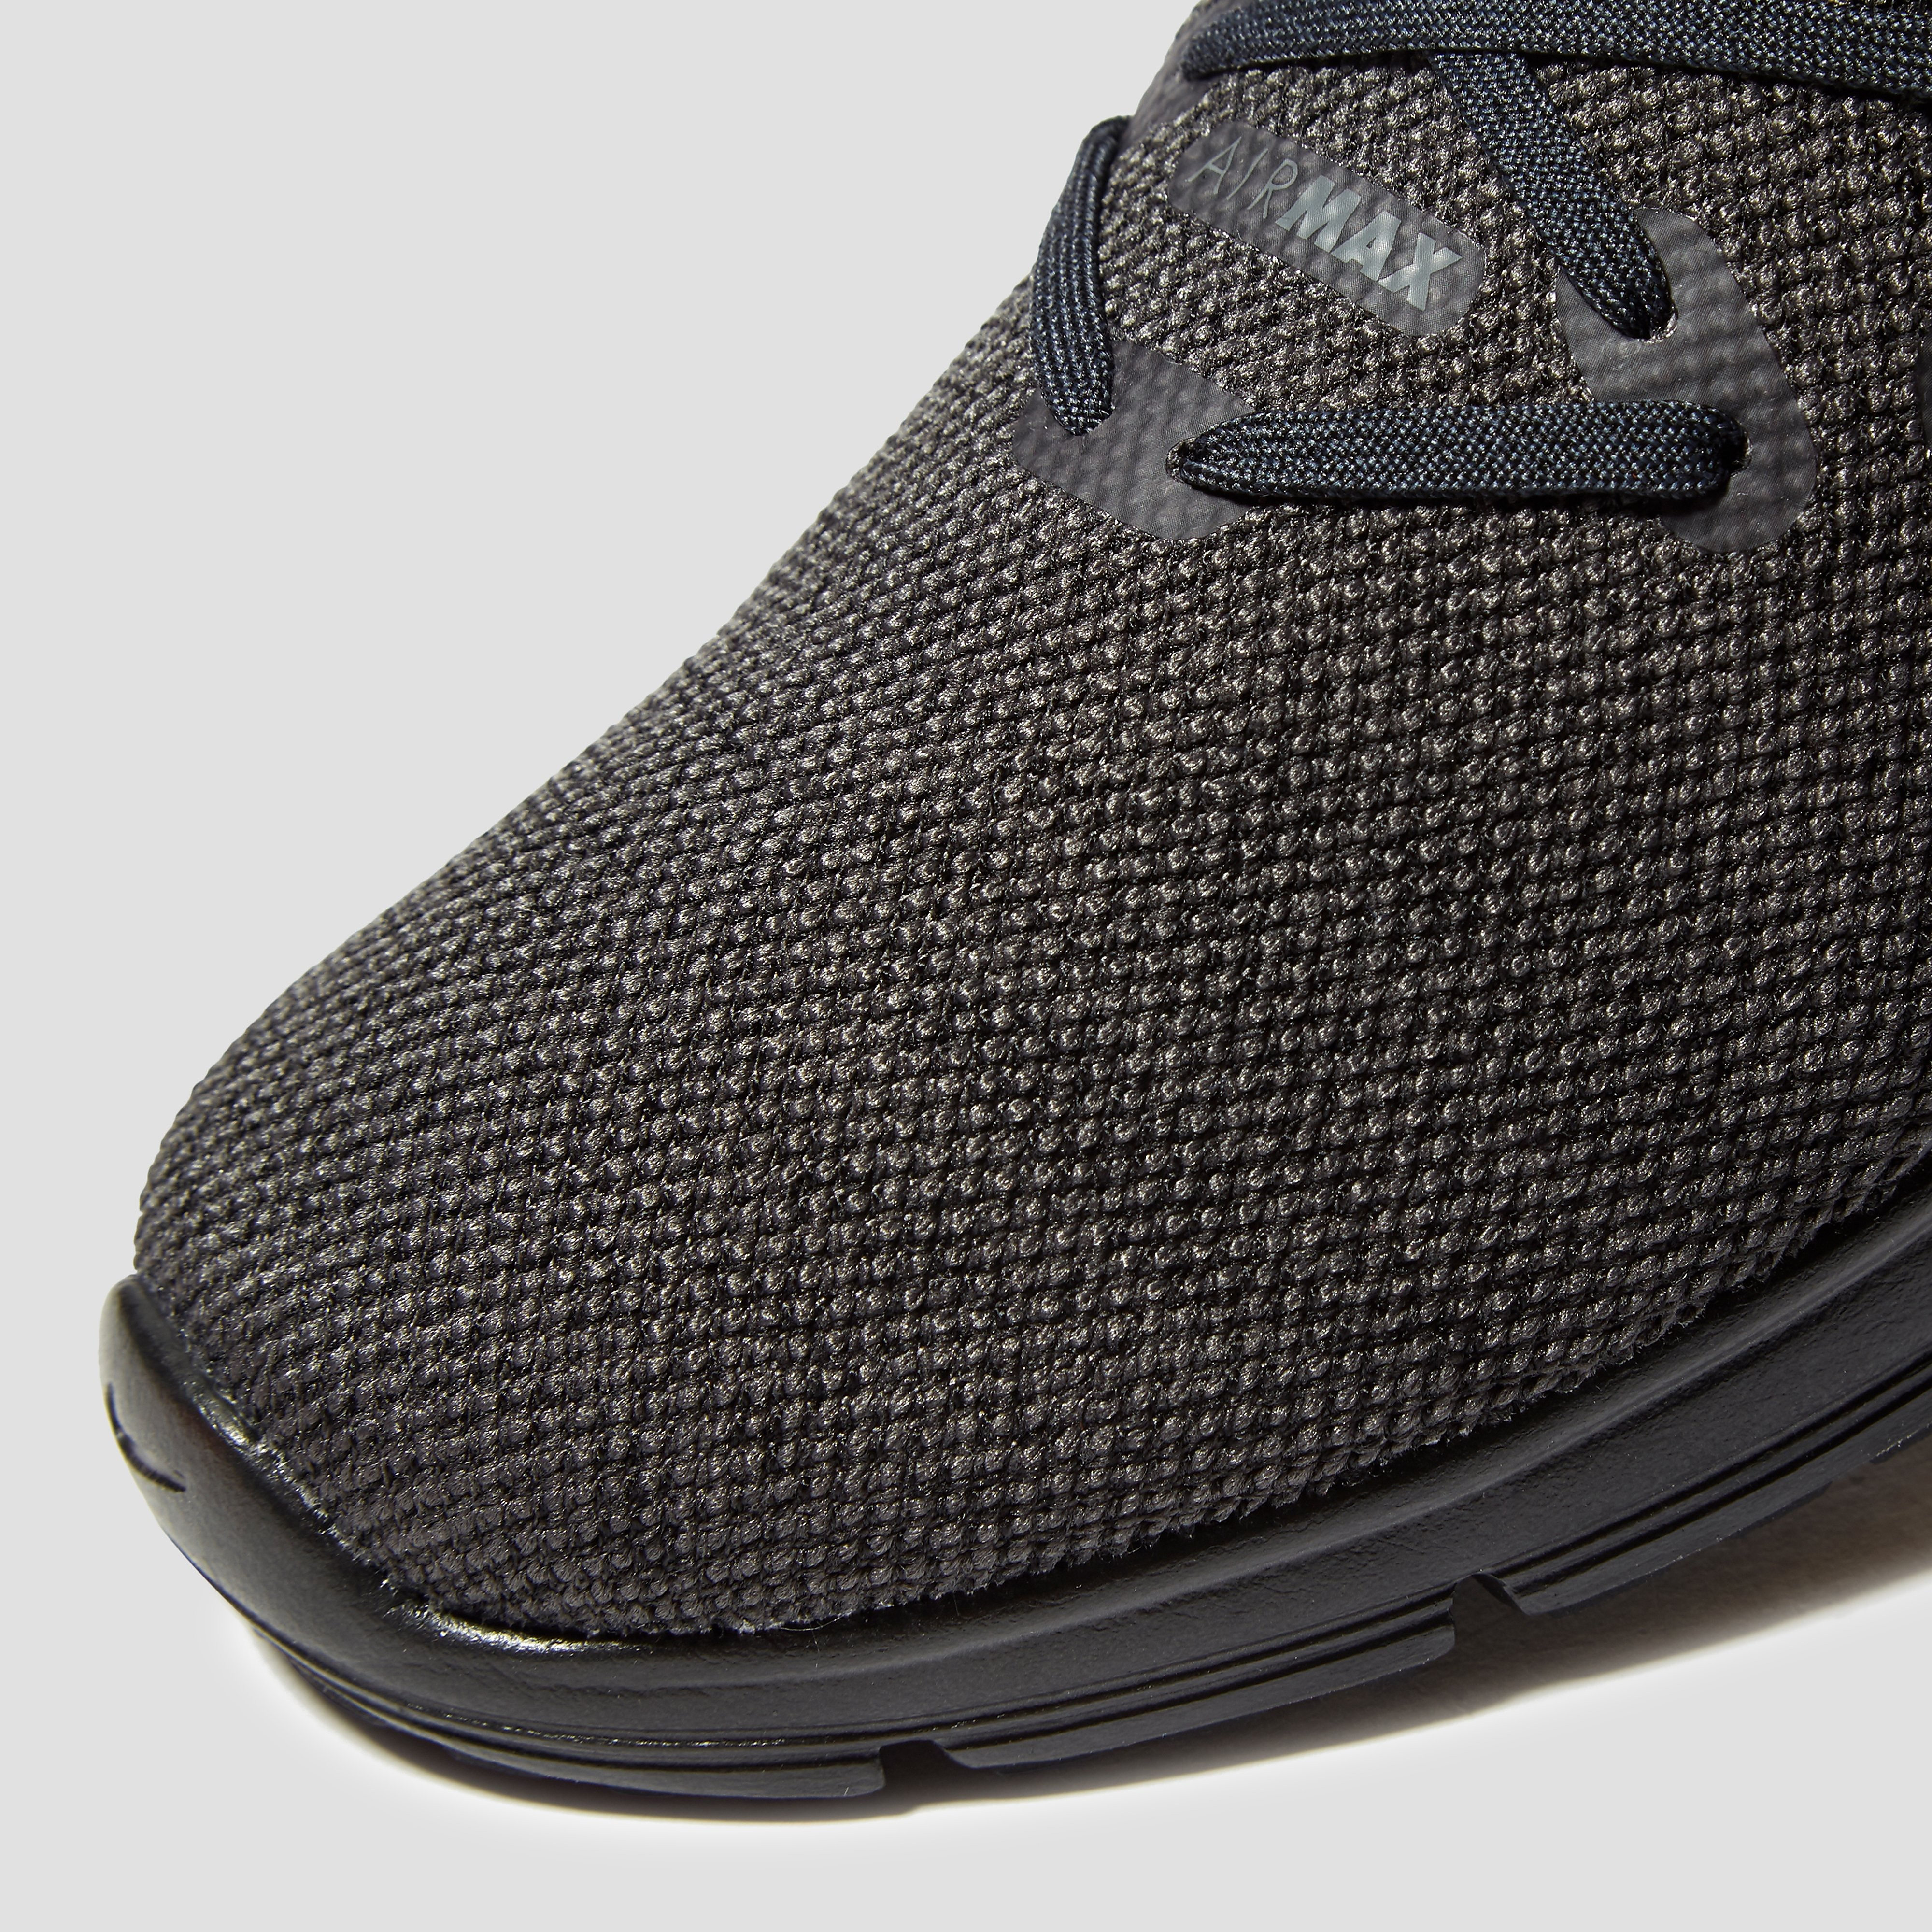 Nike Air Max Sequent Men's Running Shoes